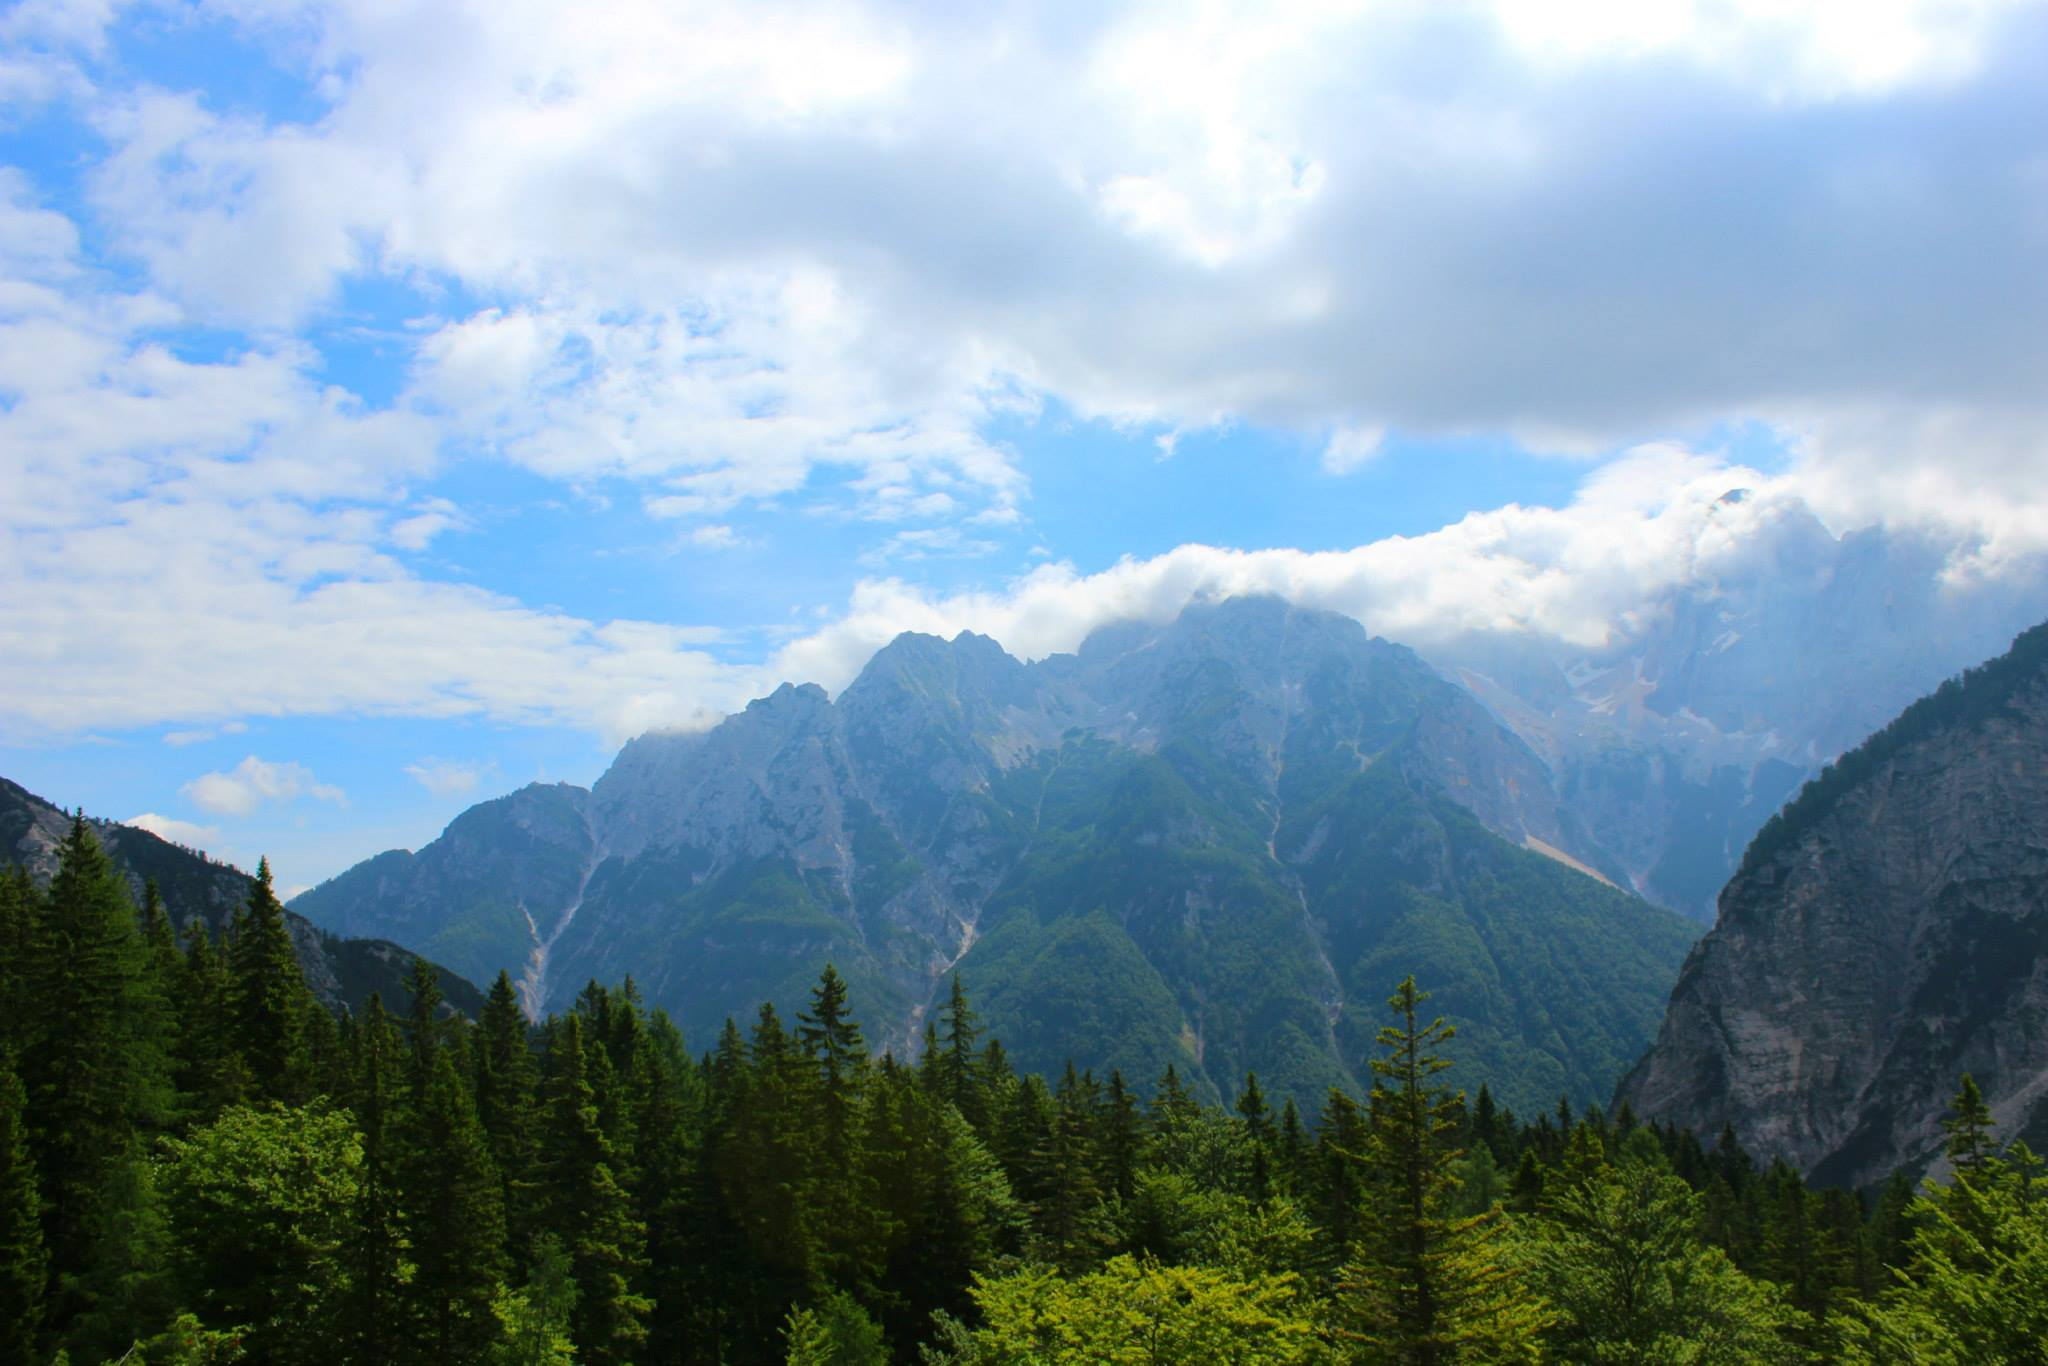 Driving though the Julian Alps